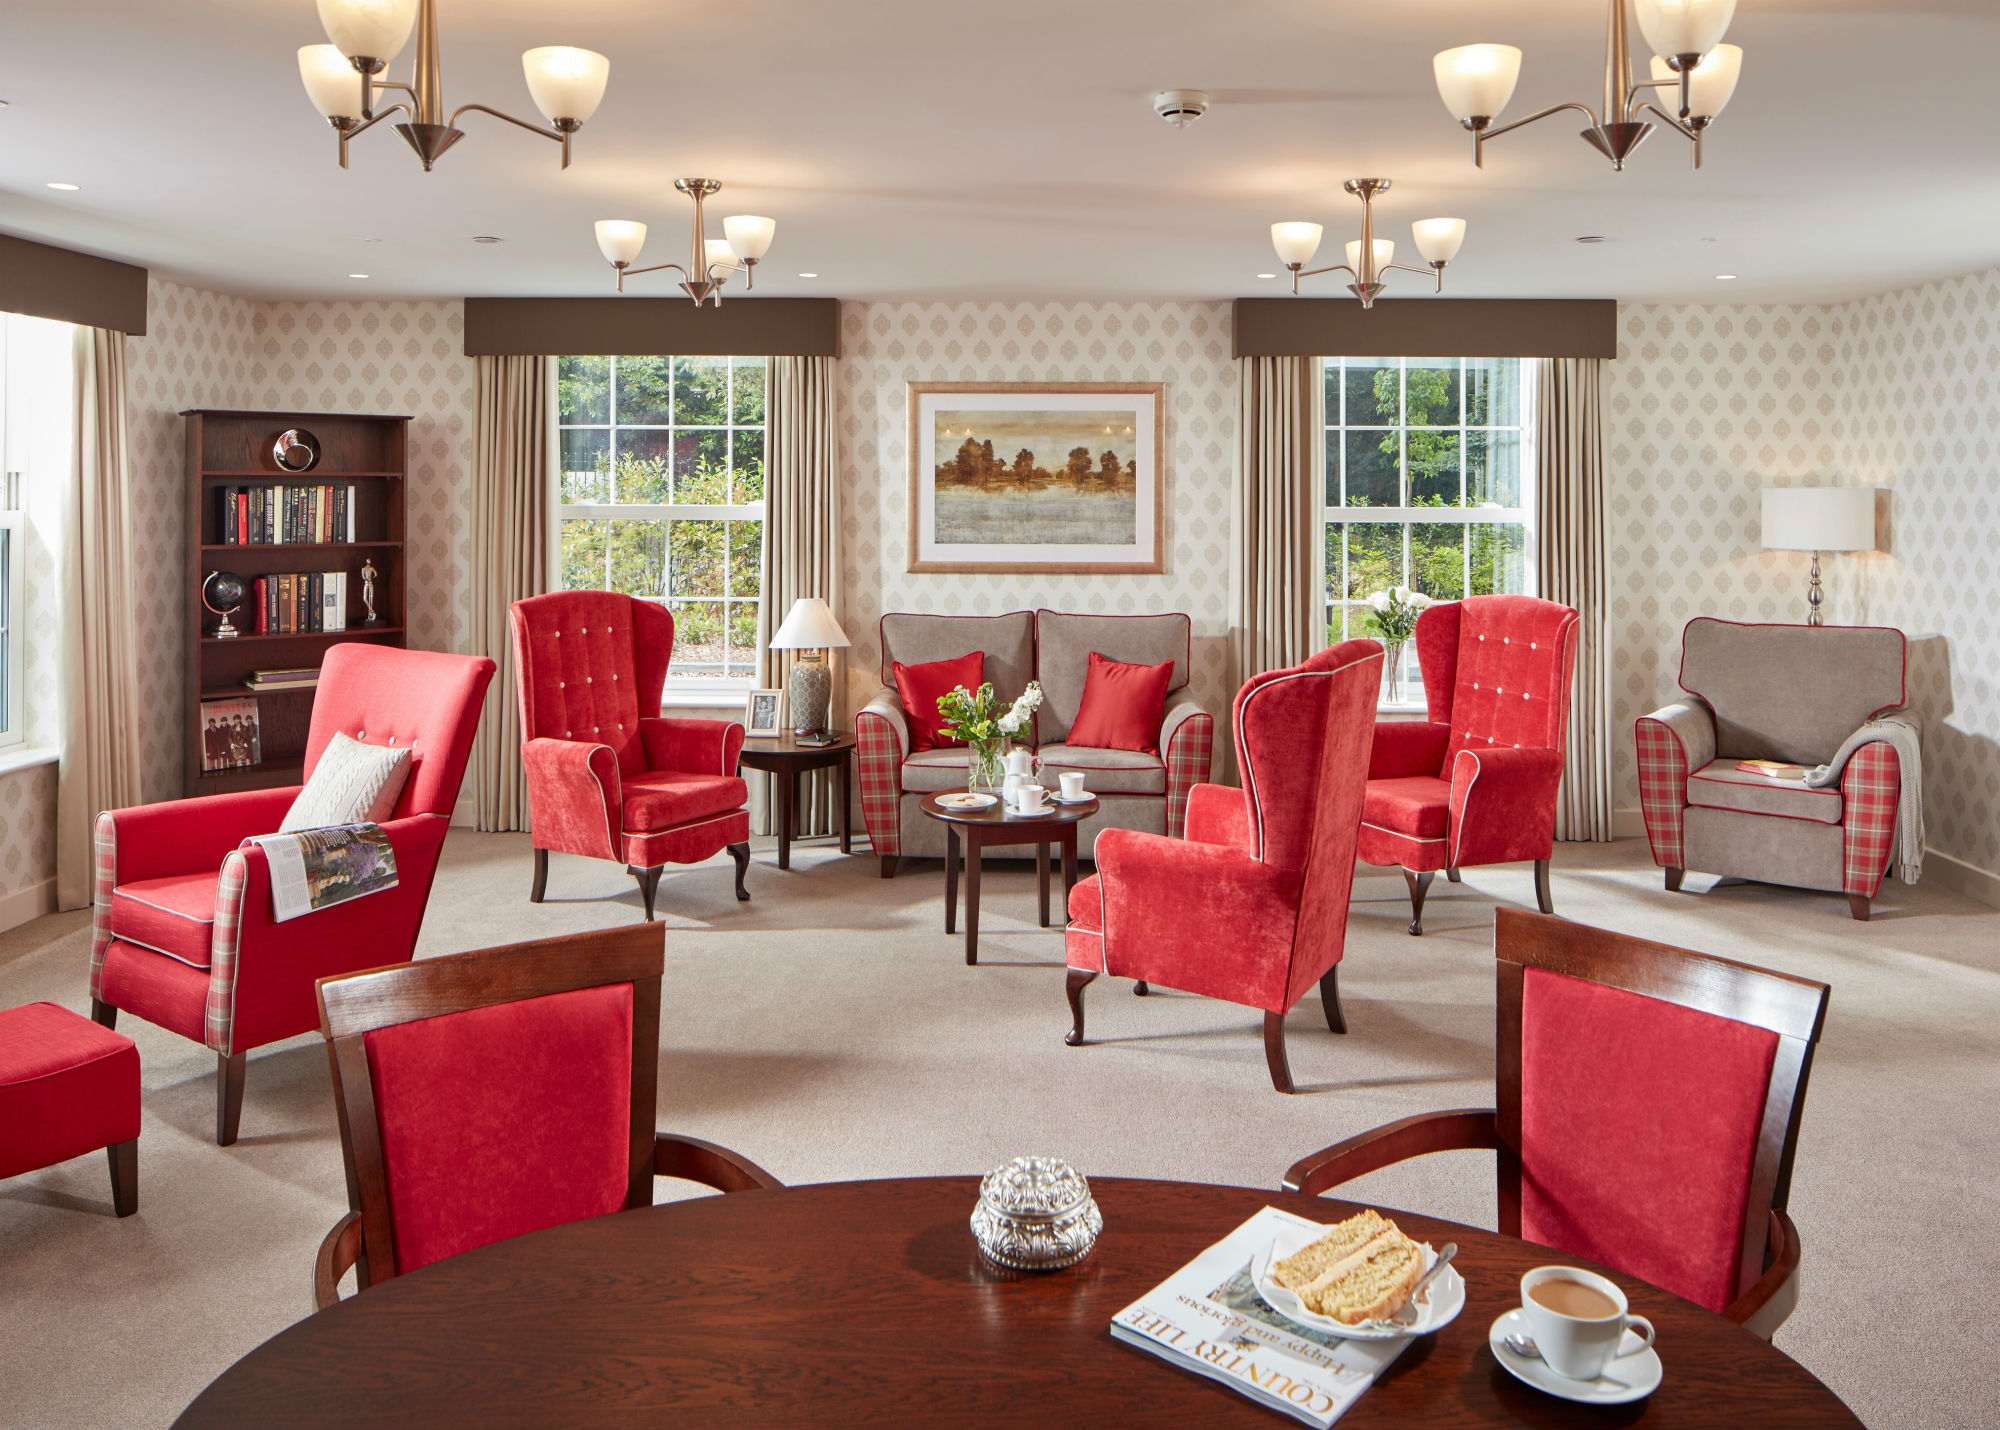 Homesmiths mental health dementia facilities magazine for Nursing home dining room ideas